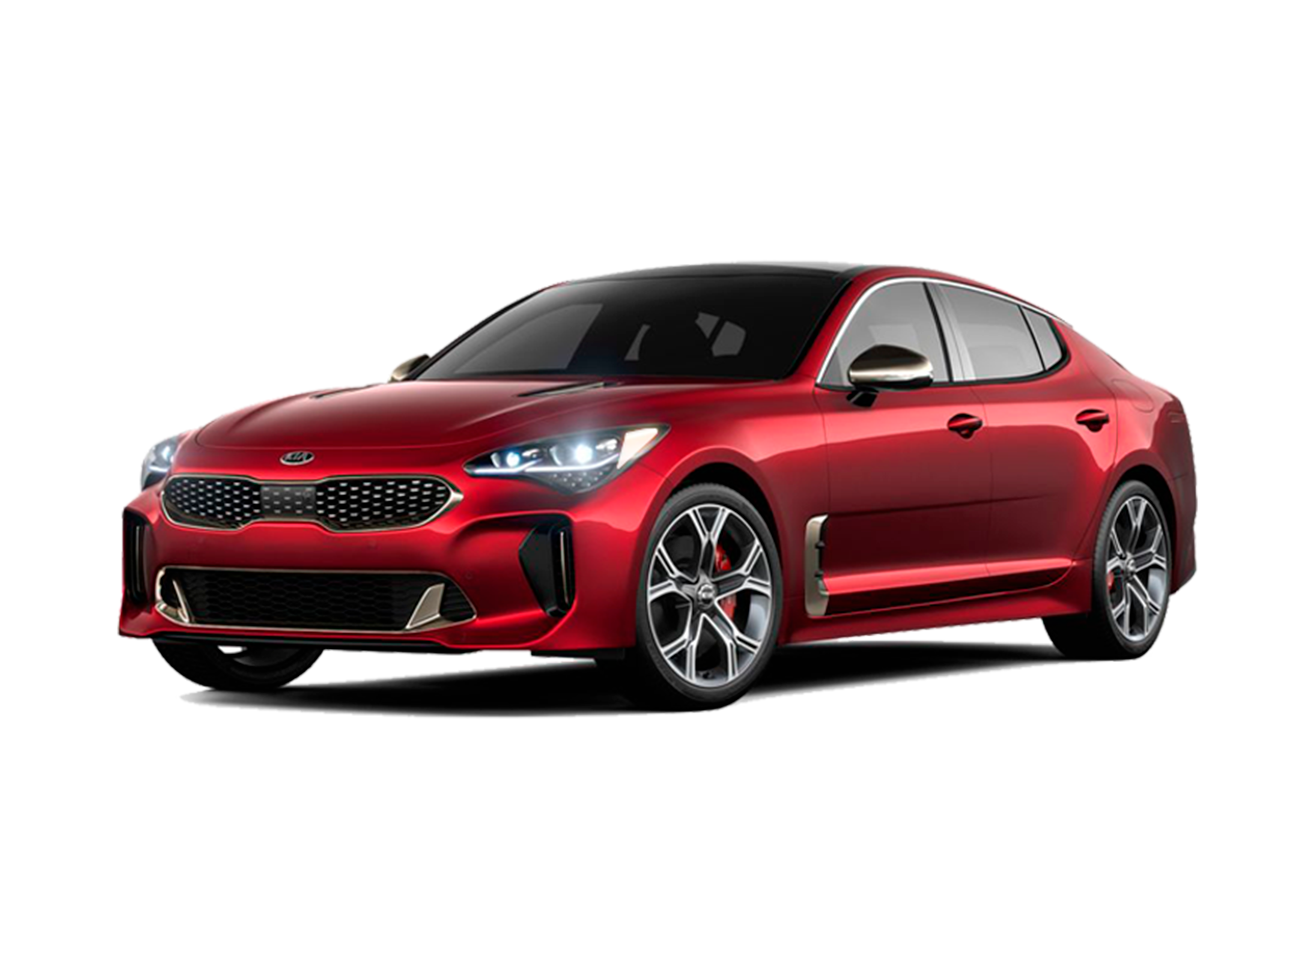 KIA - STINGER - 3.3 V6 GDI GASOLINA GT AWD E-SHIFT